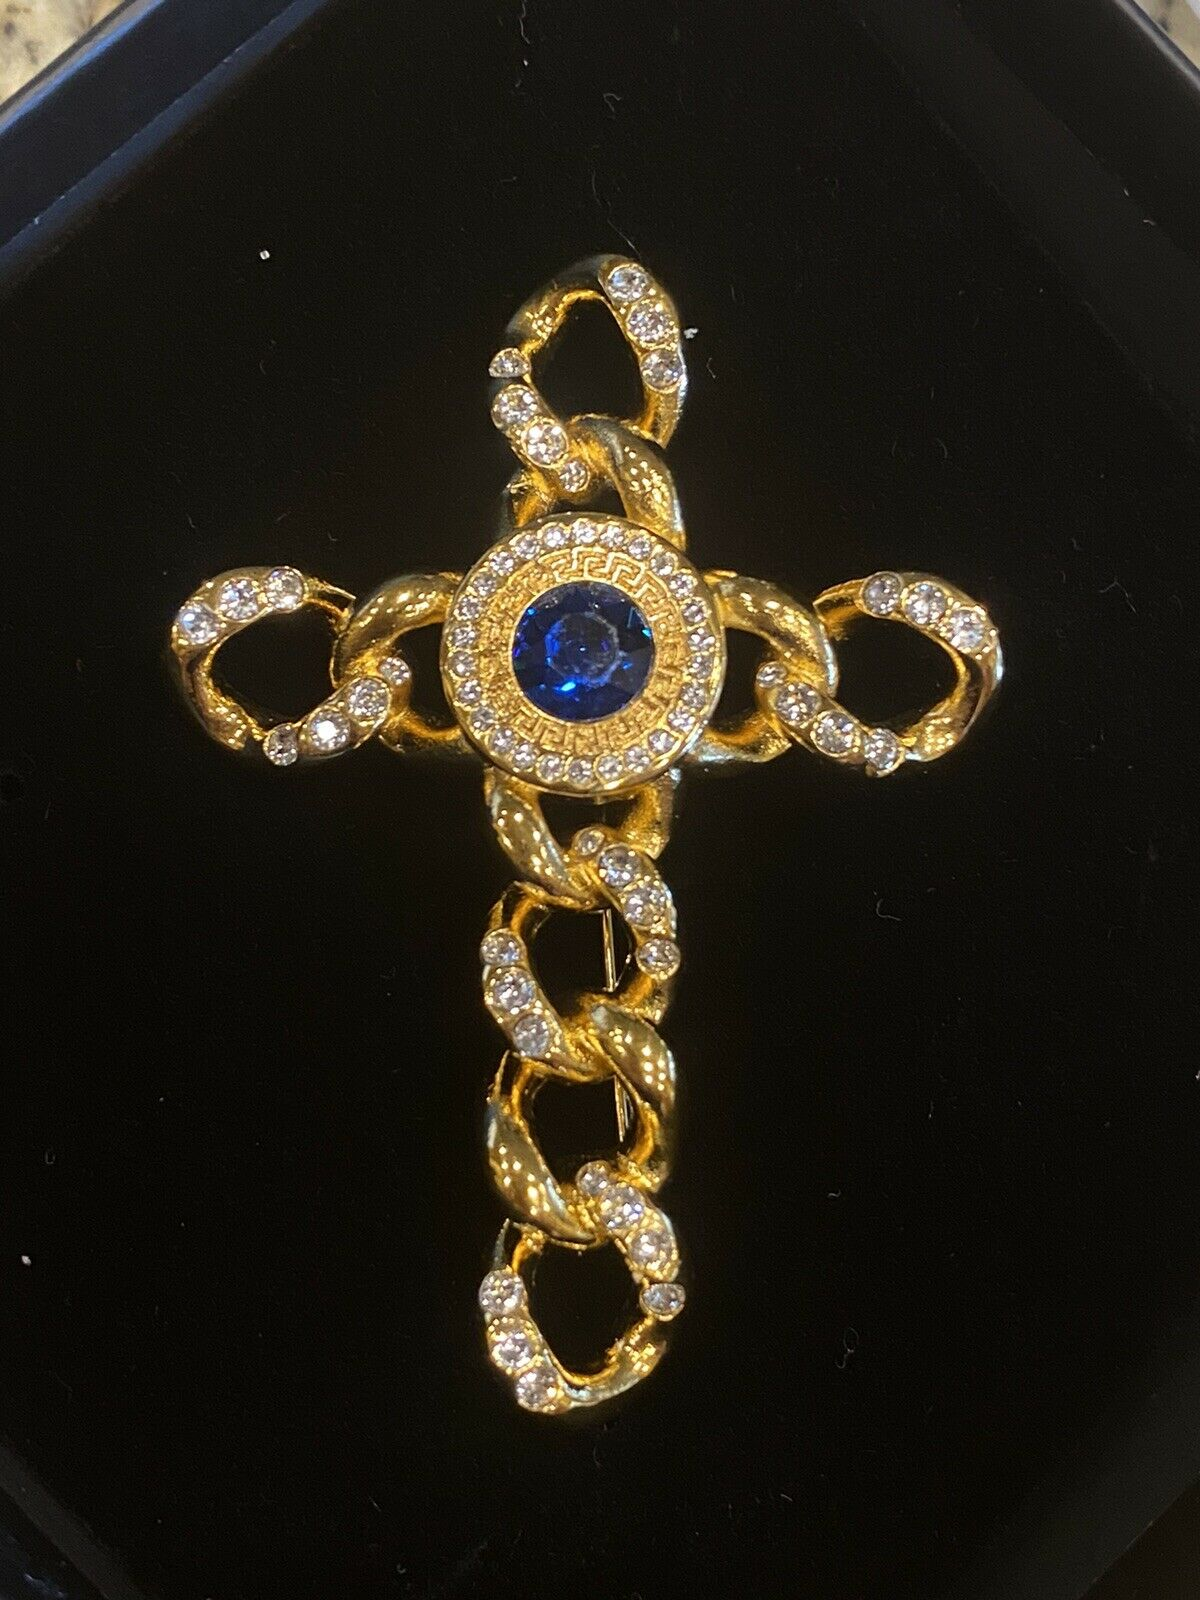 SIGNED VINTAGE GOLD PLATED GIANNI VERSACE CRYSTAL… - image 8